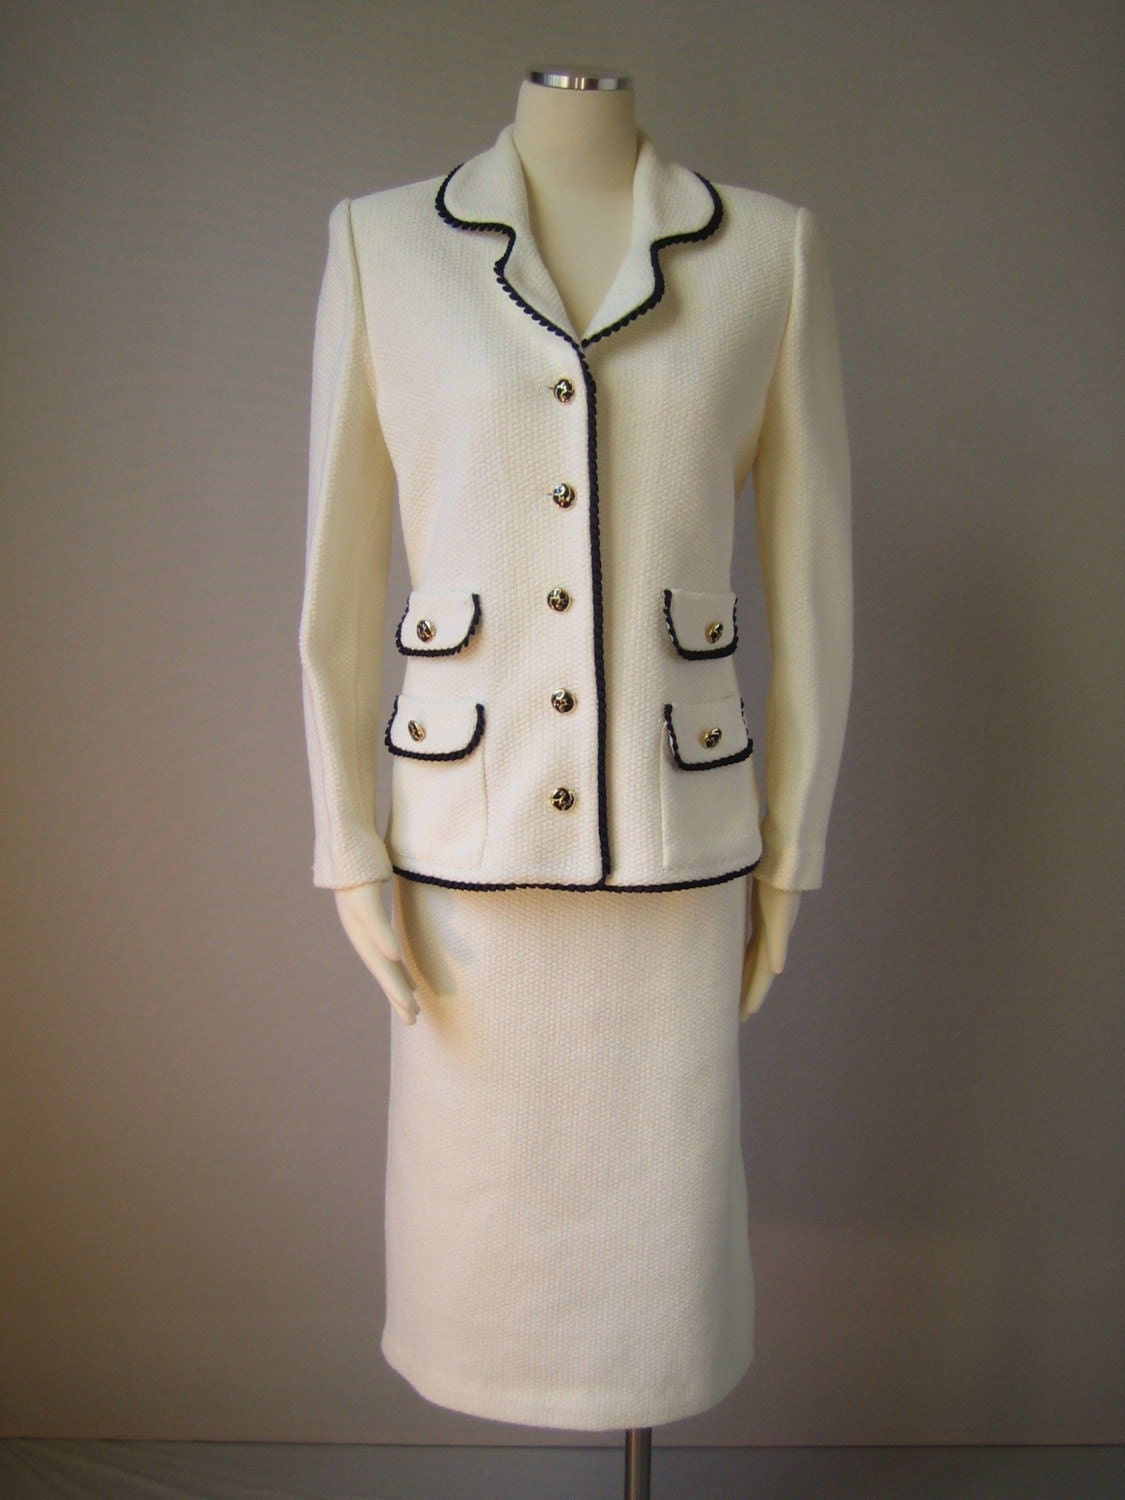 SALE vintage Chanel Inspired SUIT 1980's Cream with NAVY